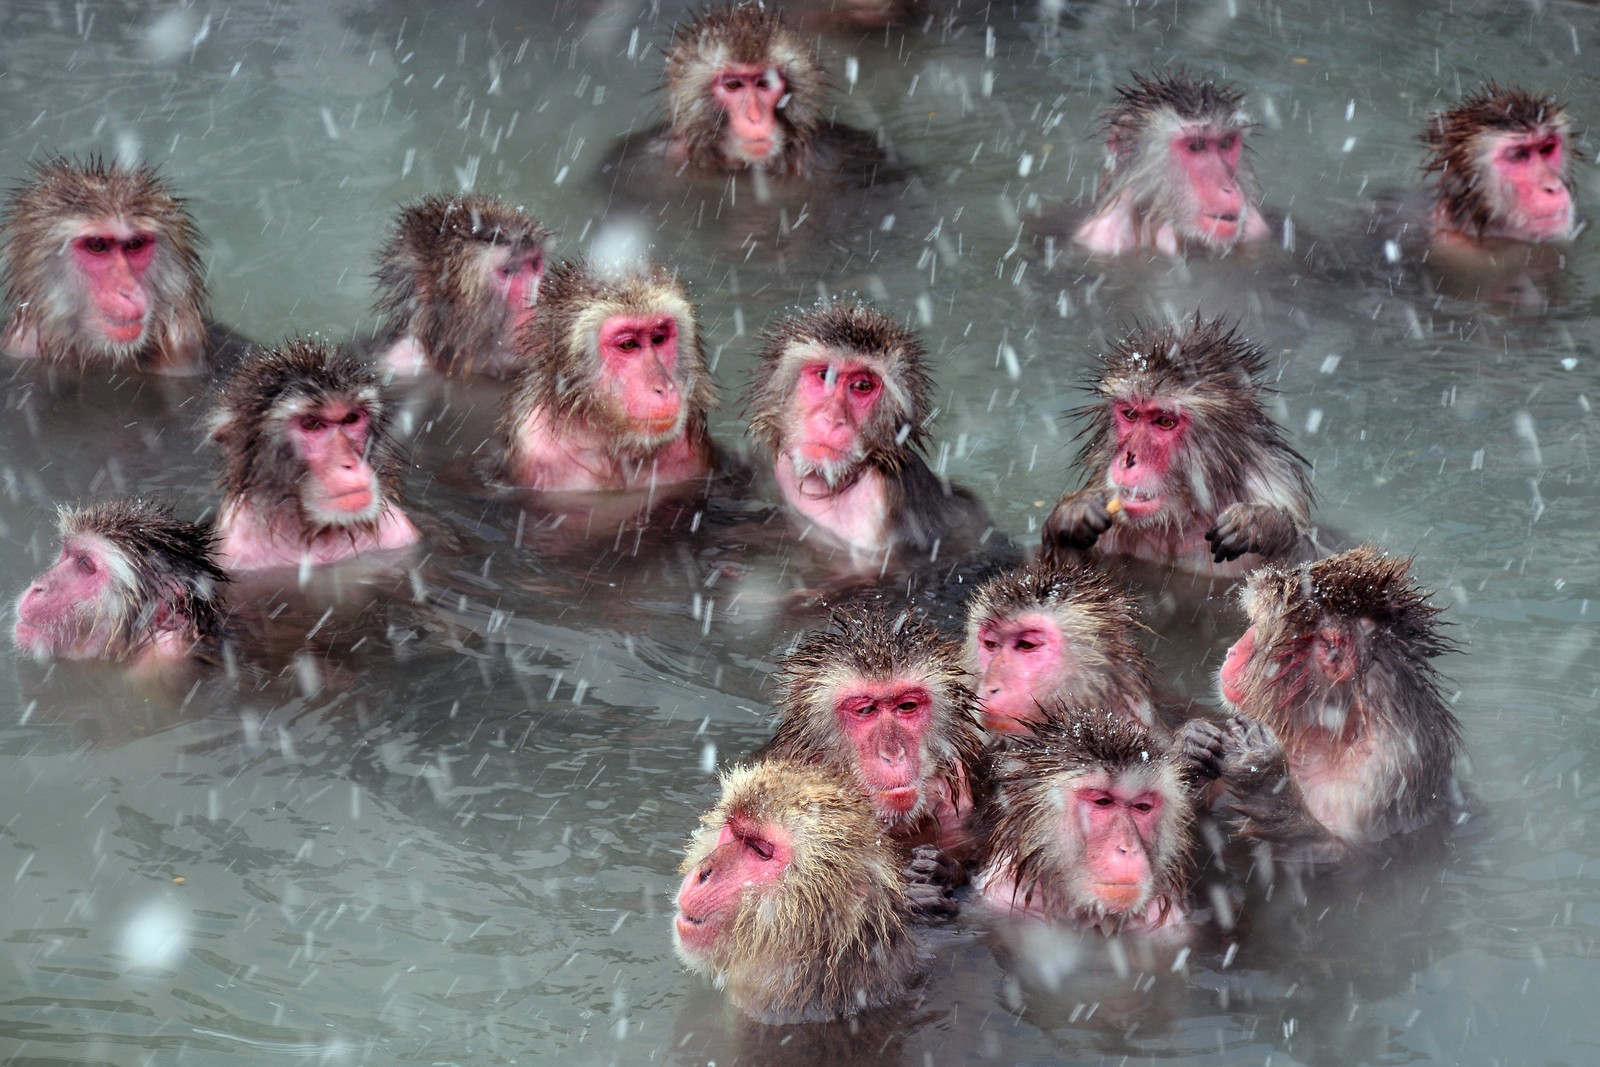 Snow monkeys in the hot spring